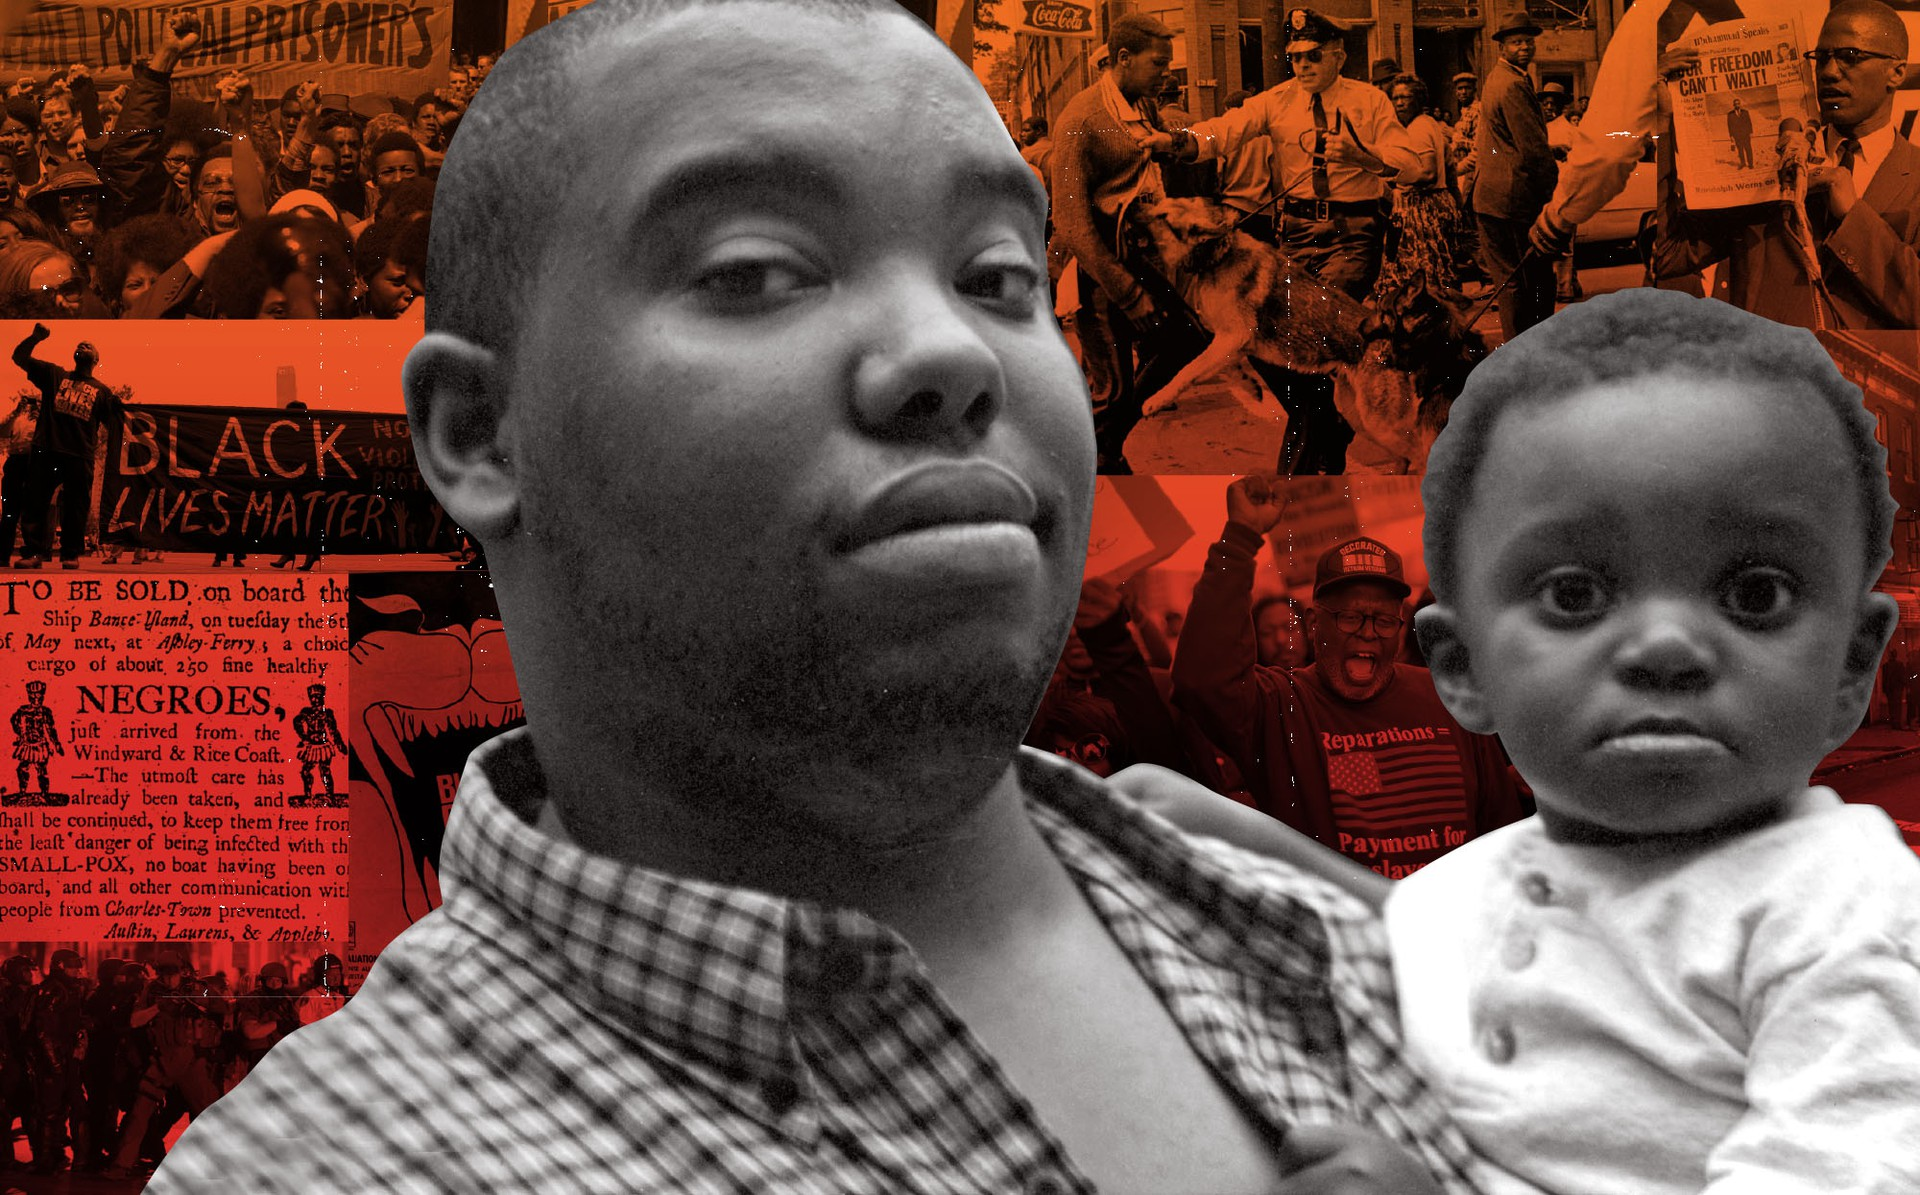 The author and his son, laid over images of Black Lives Matter and civil-rights protests